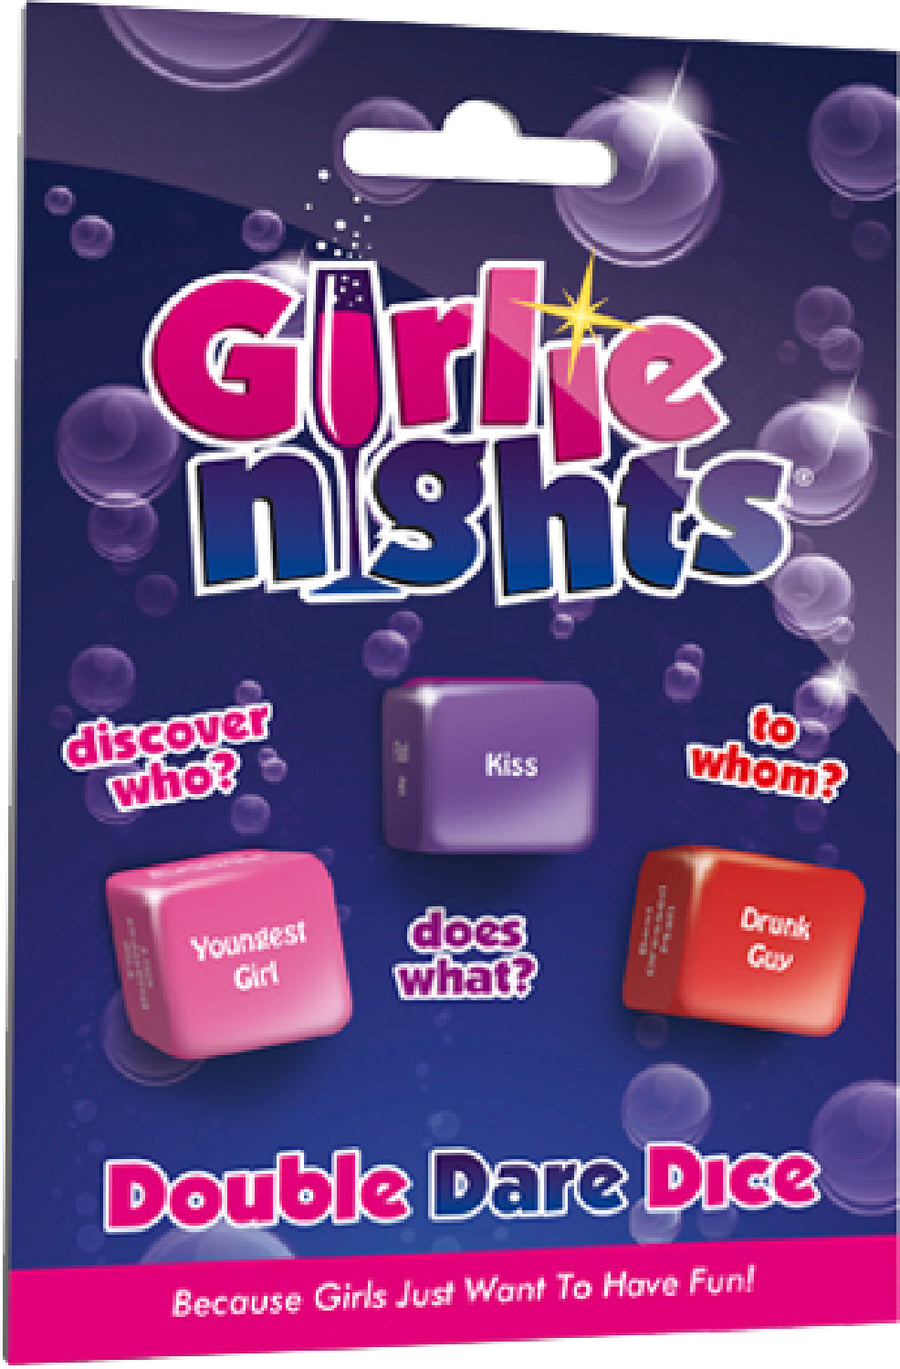 Girlie Nights Double Dare Dice - The Purple Drawer